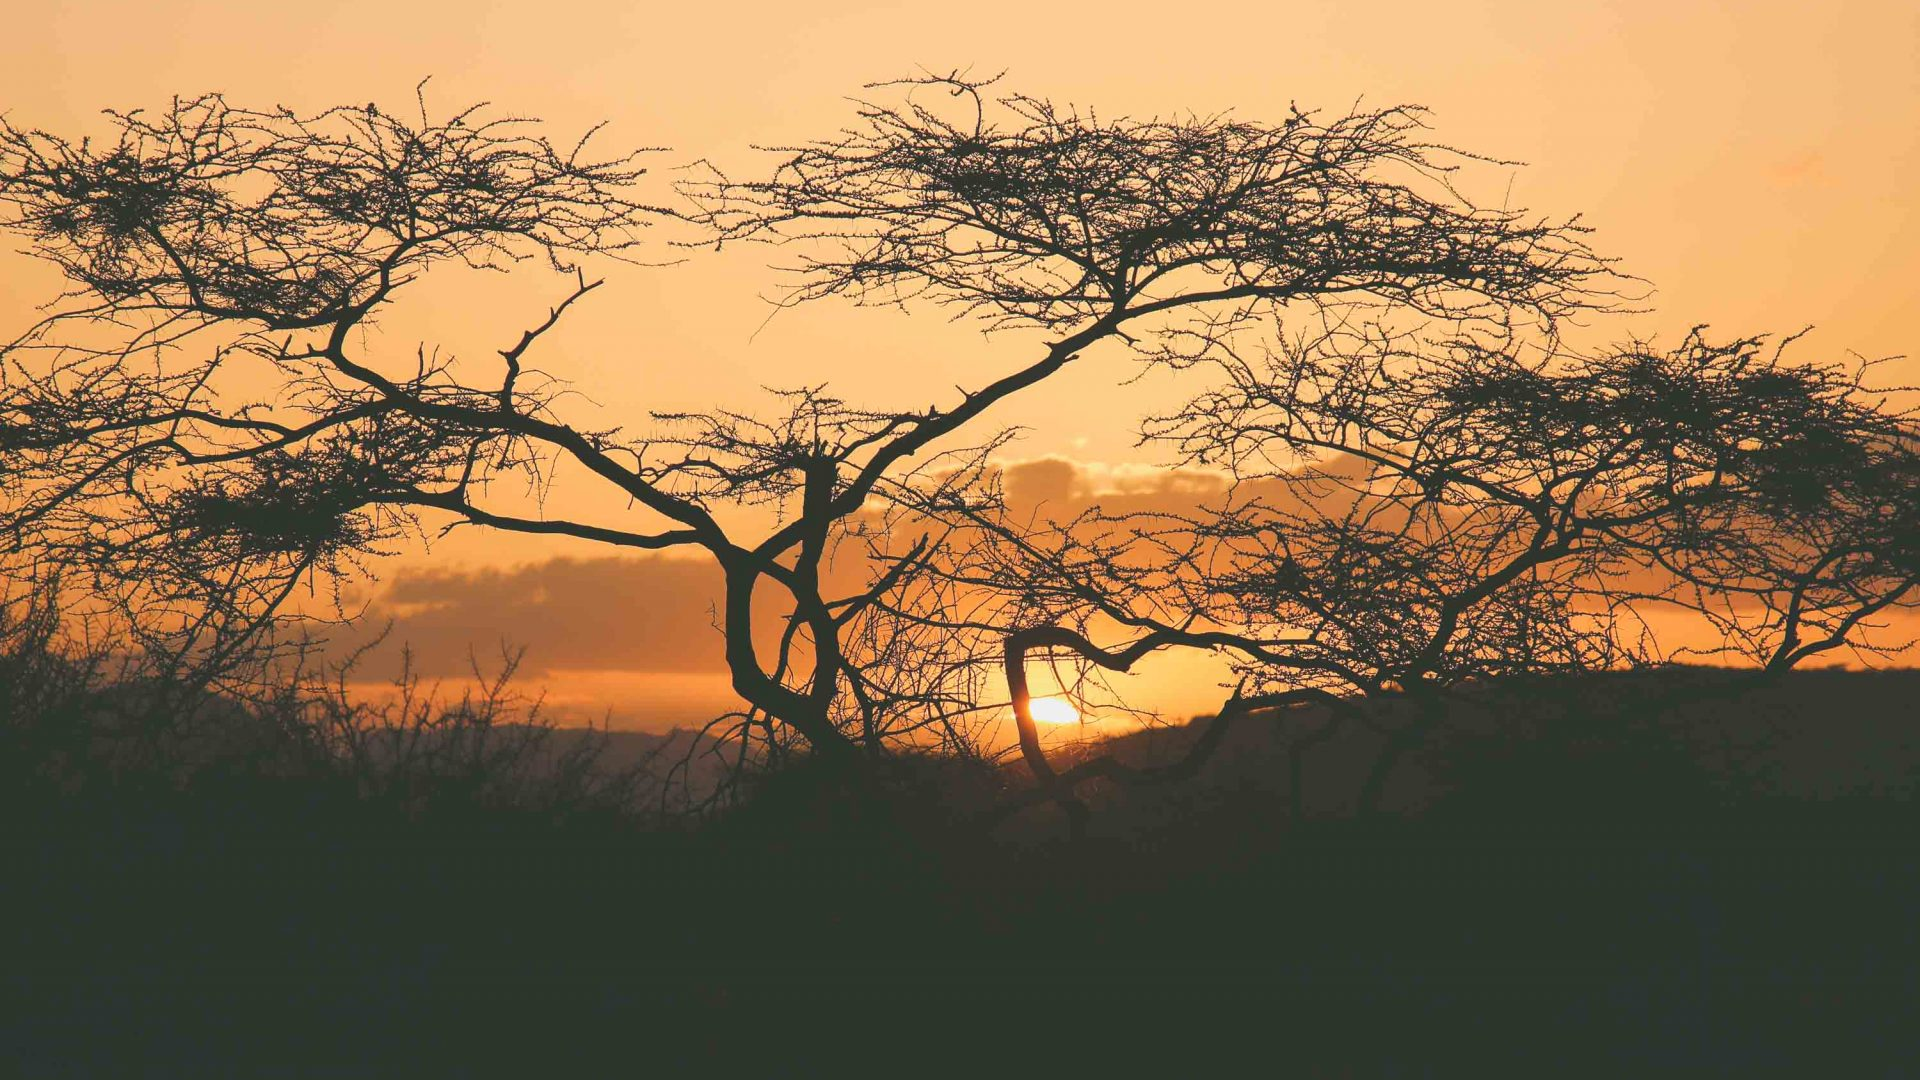 Acacia trees are silhouetted against the warm glow of the setting sun in Samburu territory, Kenya.